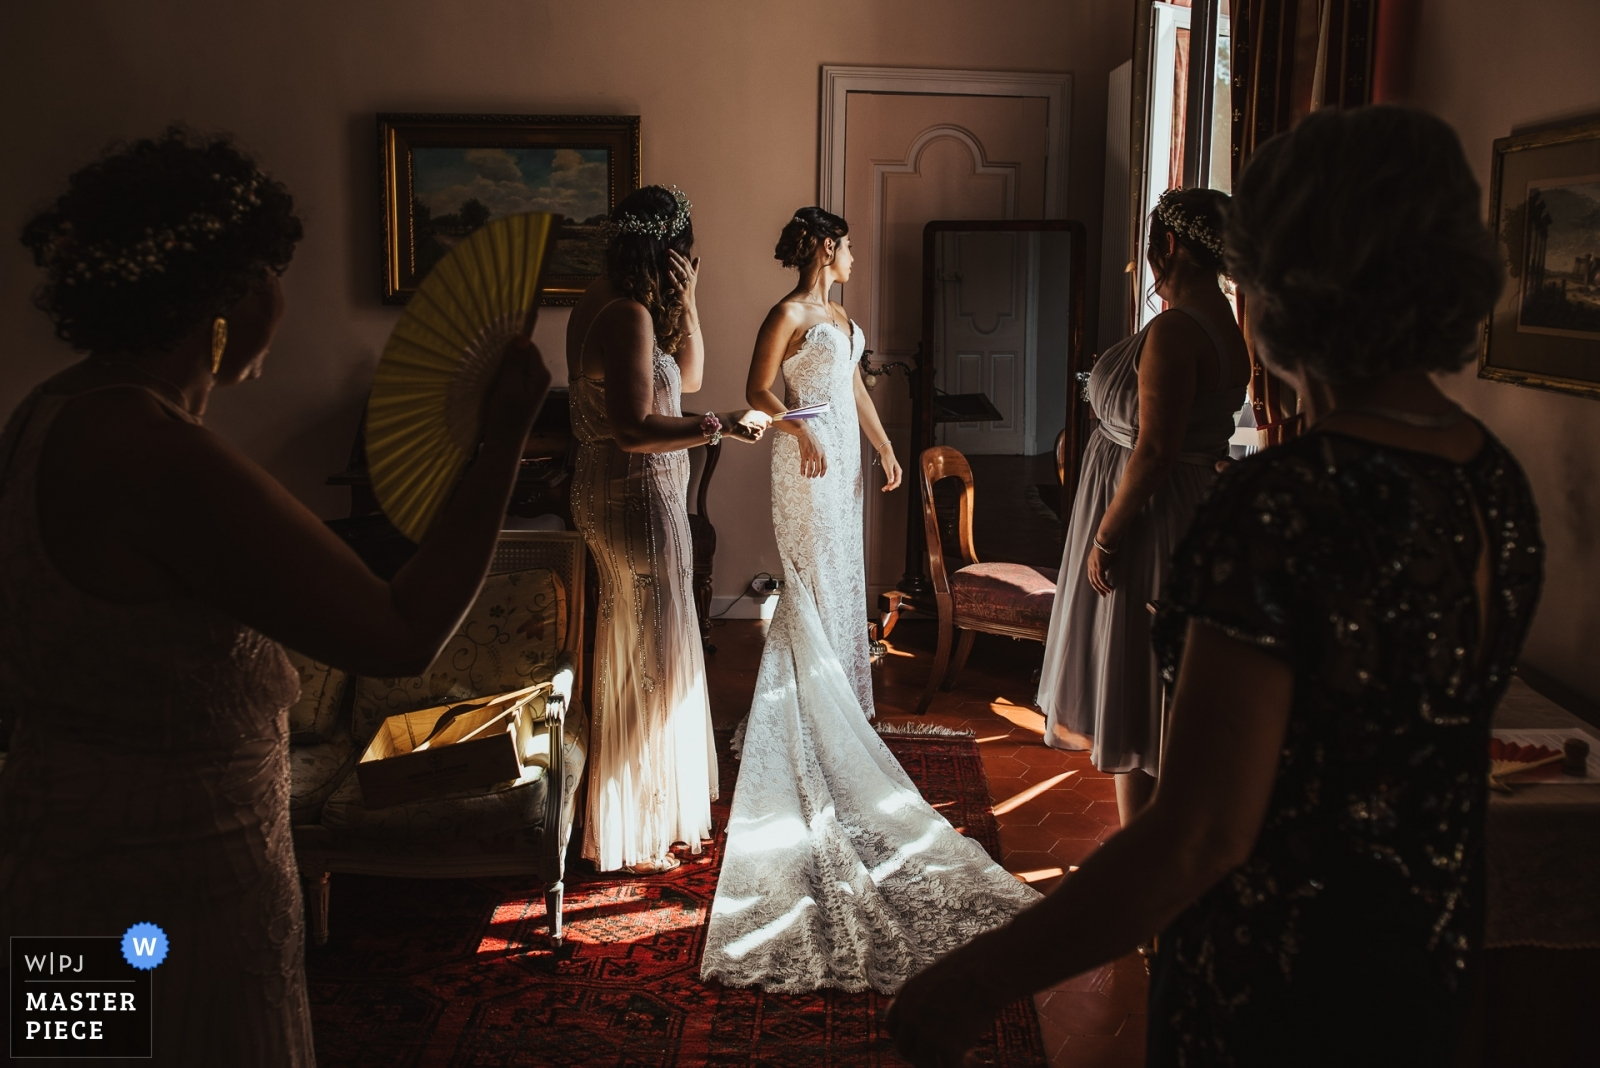 A bride is surrounded by her bridesmaids before her wedding ceremony - Derbyshire, East Midlands Wedding Photography -  | Château de Roquelune, Pezenas, France